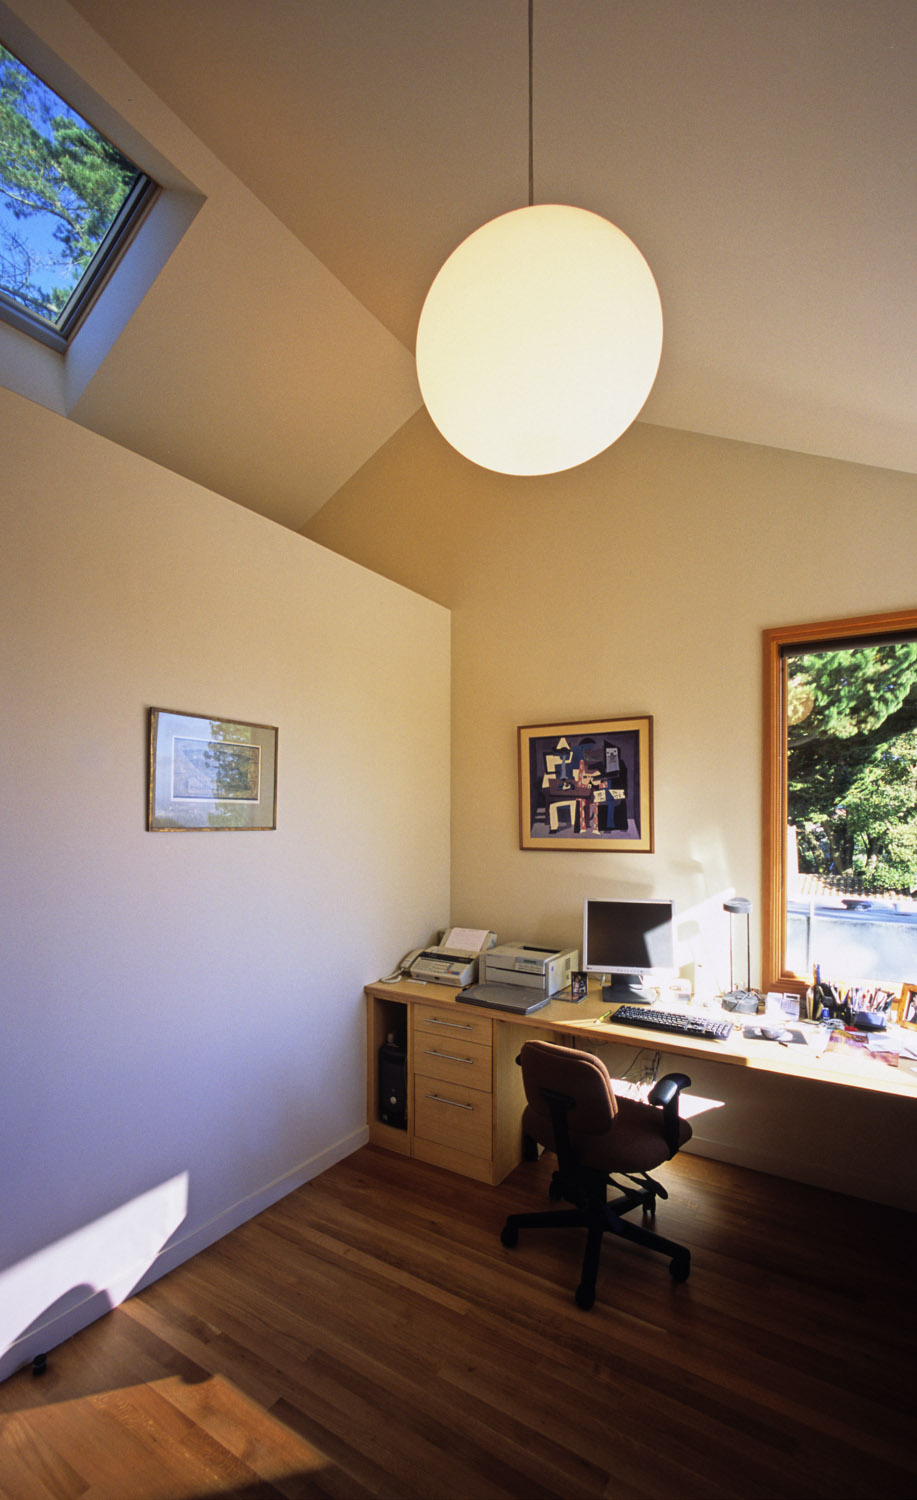 A skylight over a light shelf expands the sense of openness and the play of natural light.